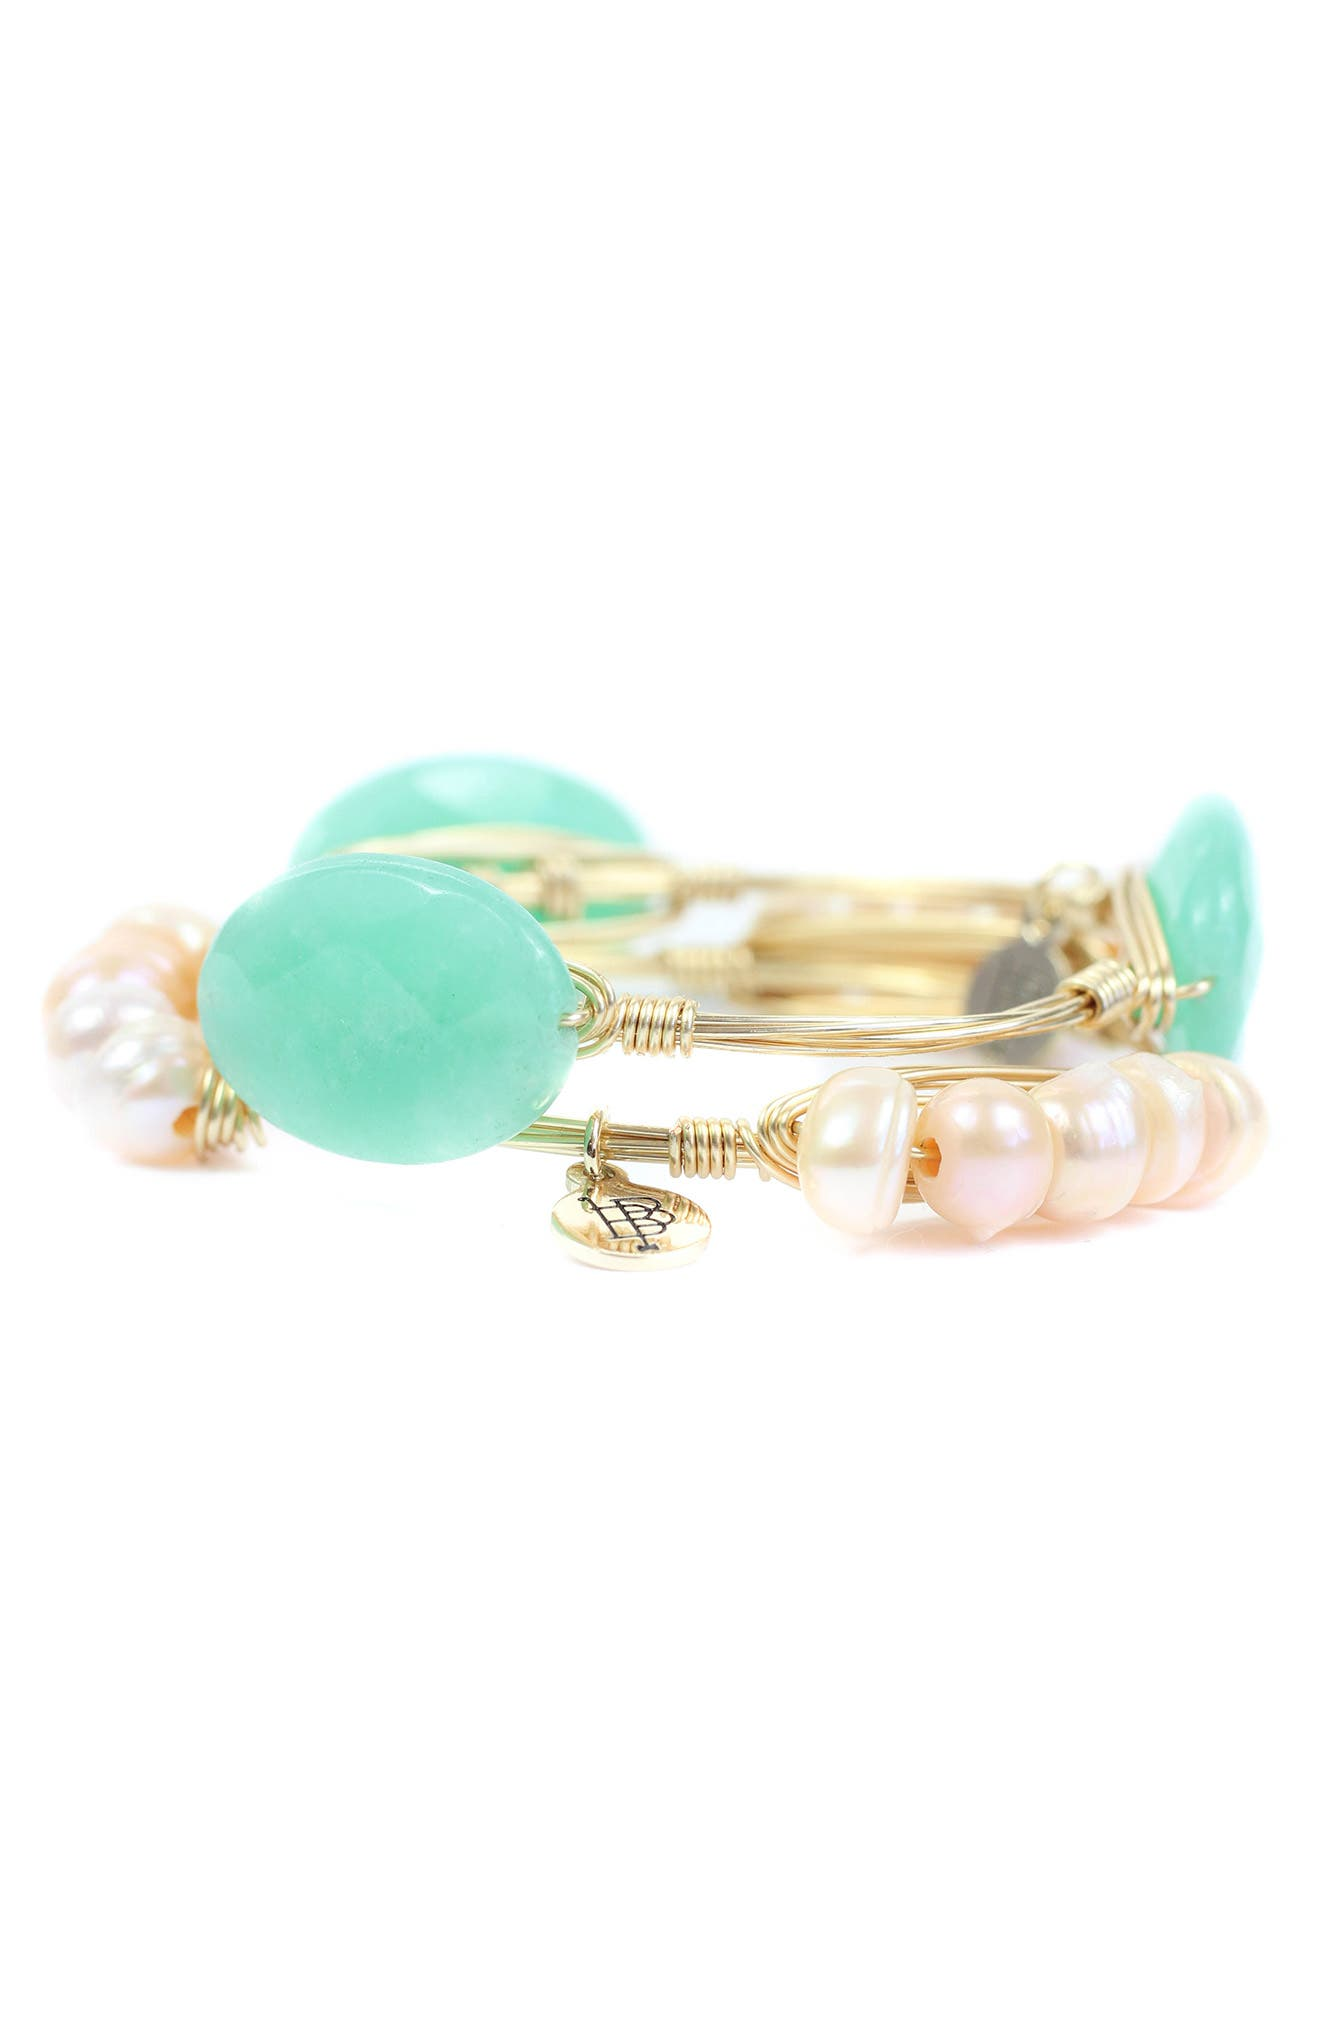 Cultured Peal & Stone Bangle Set,                             Main thumbnail 1, color,                             GREEN/ GOLD AND BLUSH/ GOLD